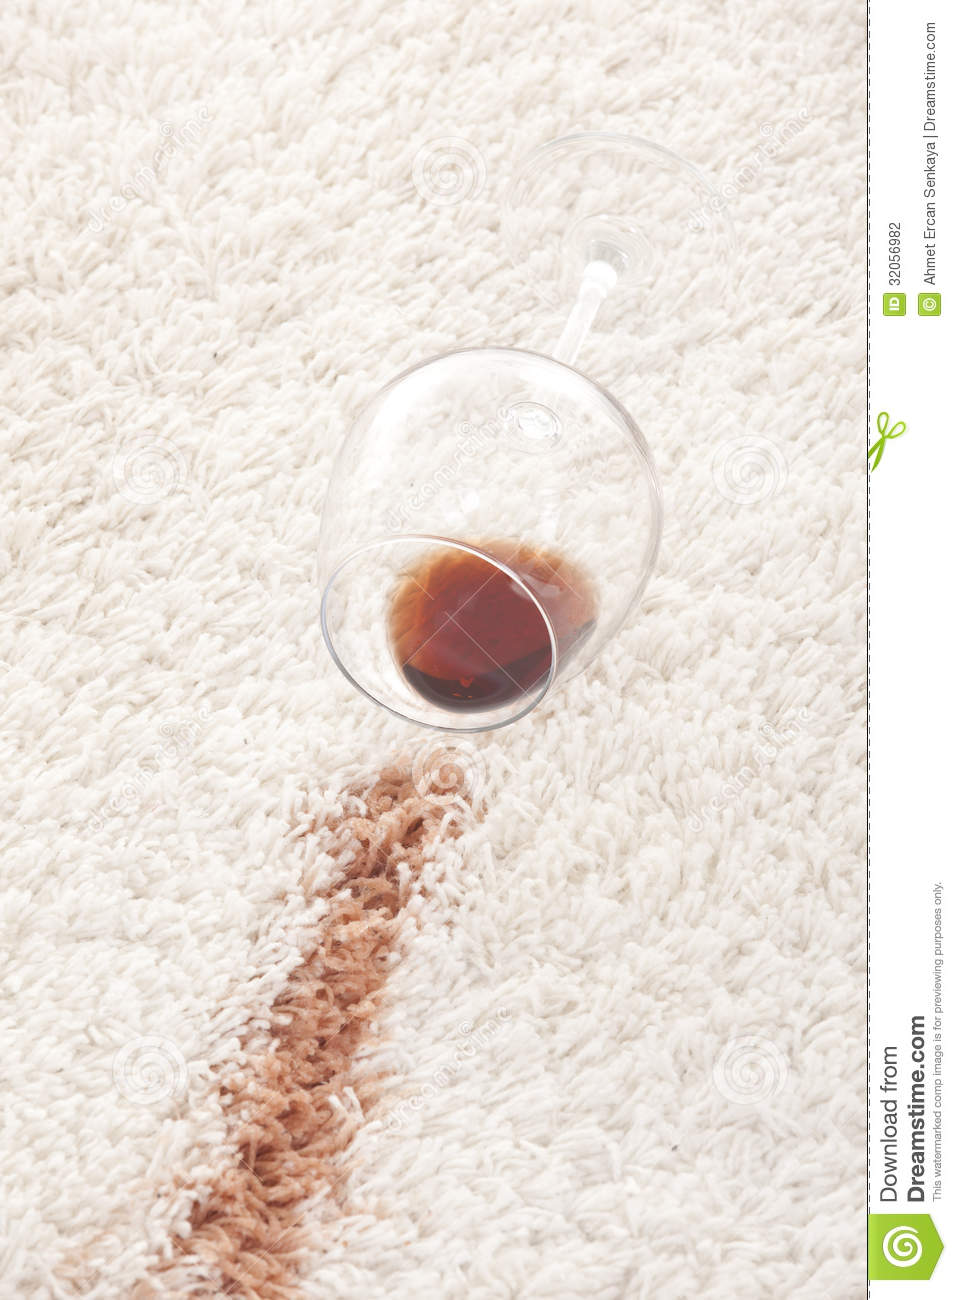 Carpet Cleaning Stock Photography Image 32056982